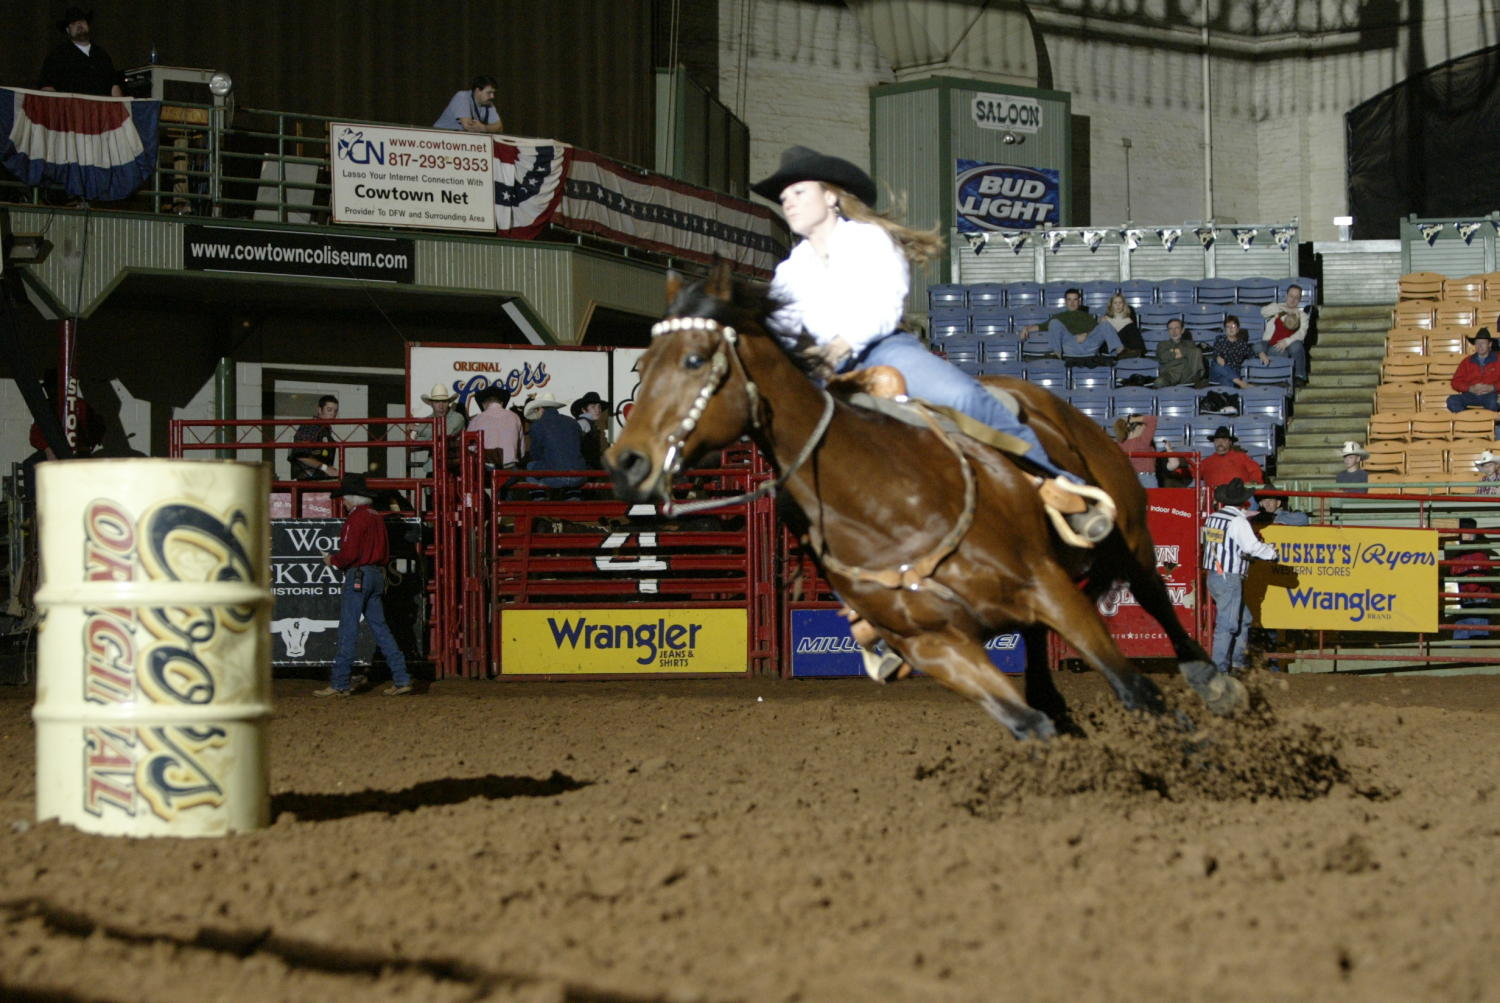 [Barrel Racing at Cowtown Coliseum]                                                                                                      [Sequence #]: 1 of 1